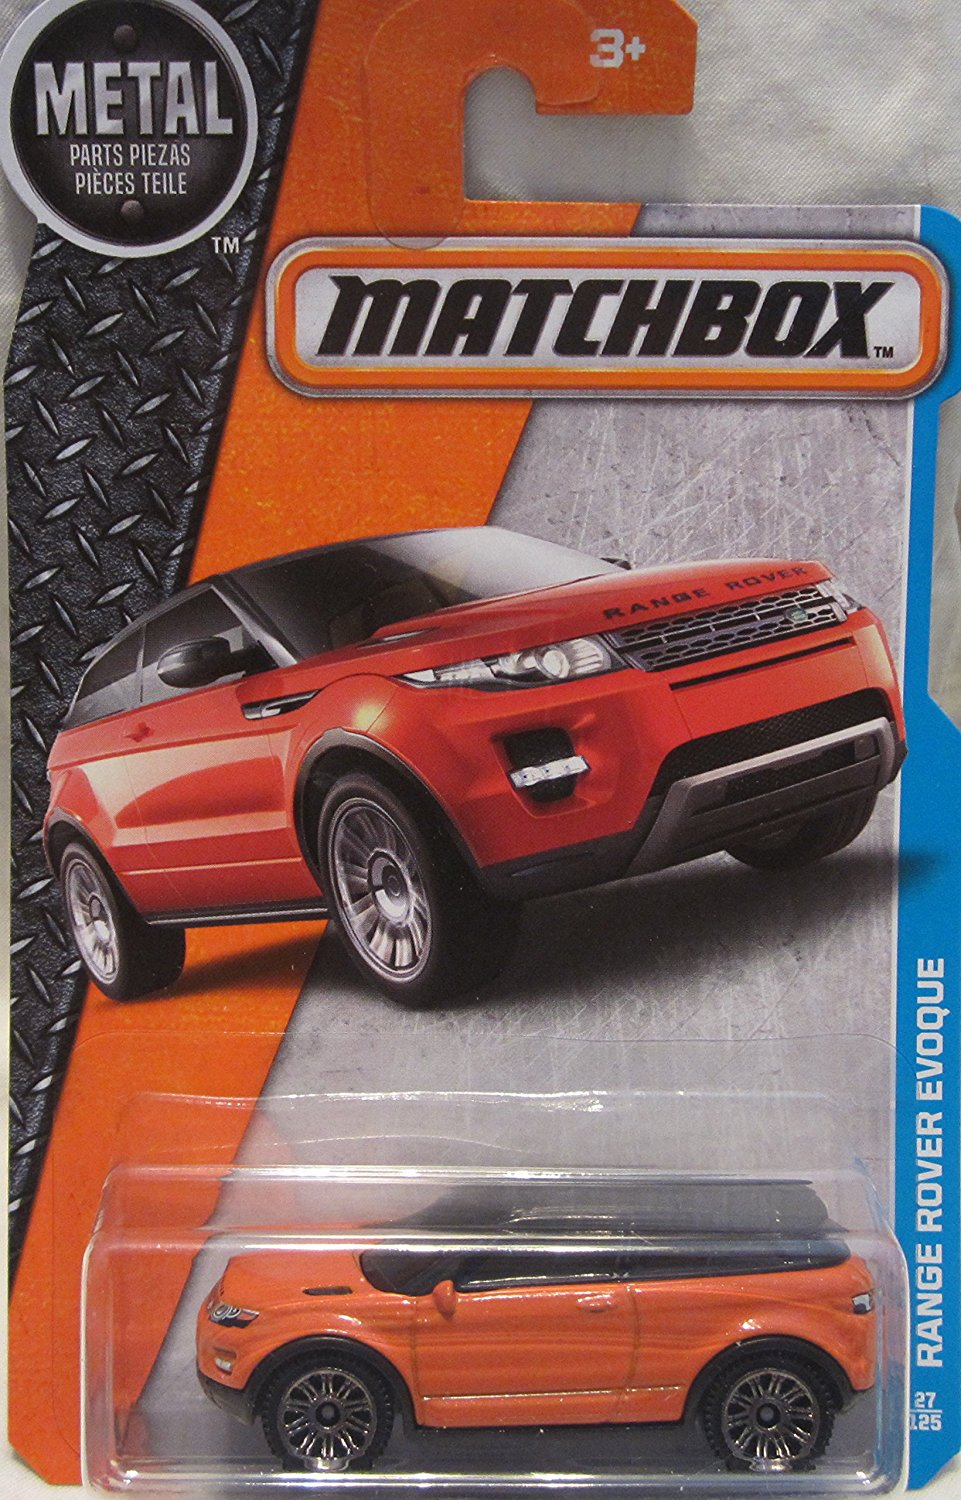 2016 MBX Adventure City Range Rover Evoque 27 1251:64 Scale By Matchbox by